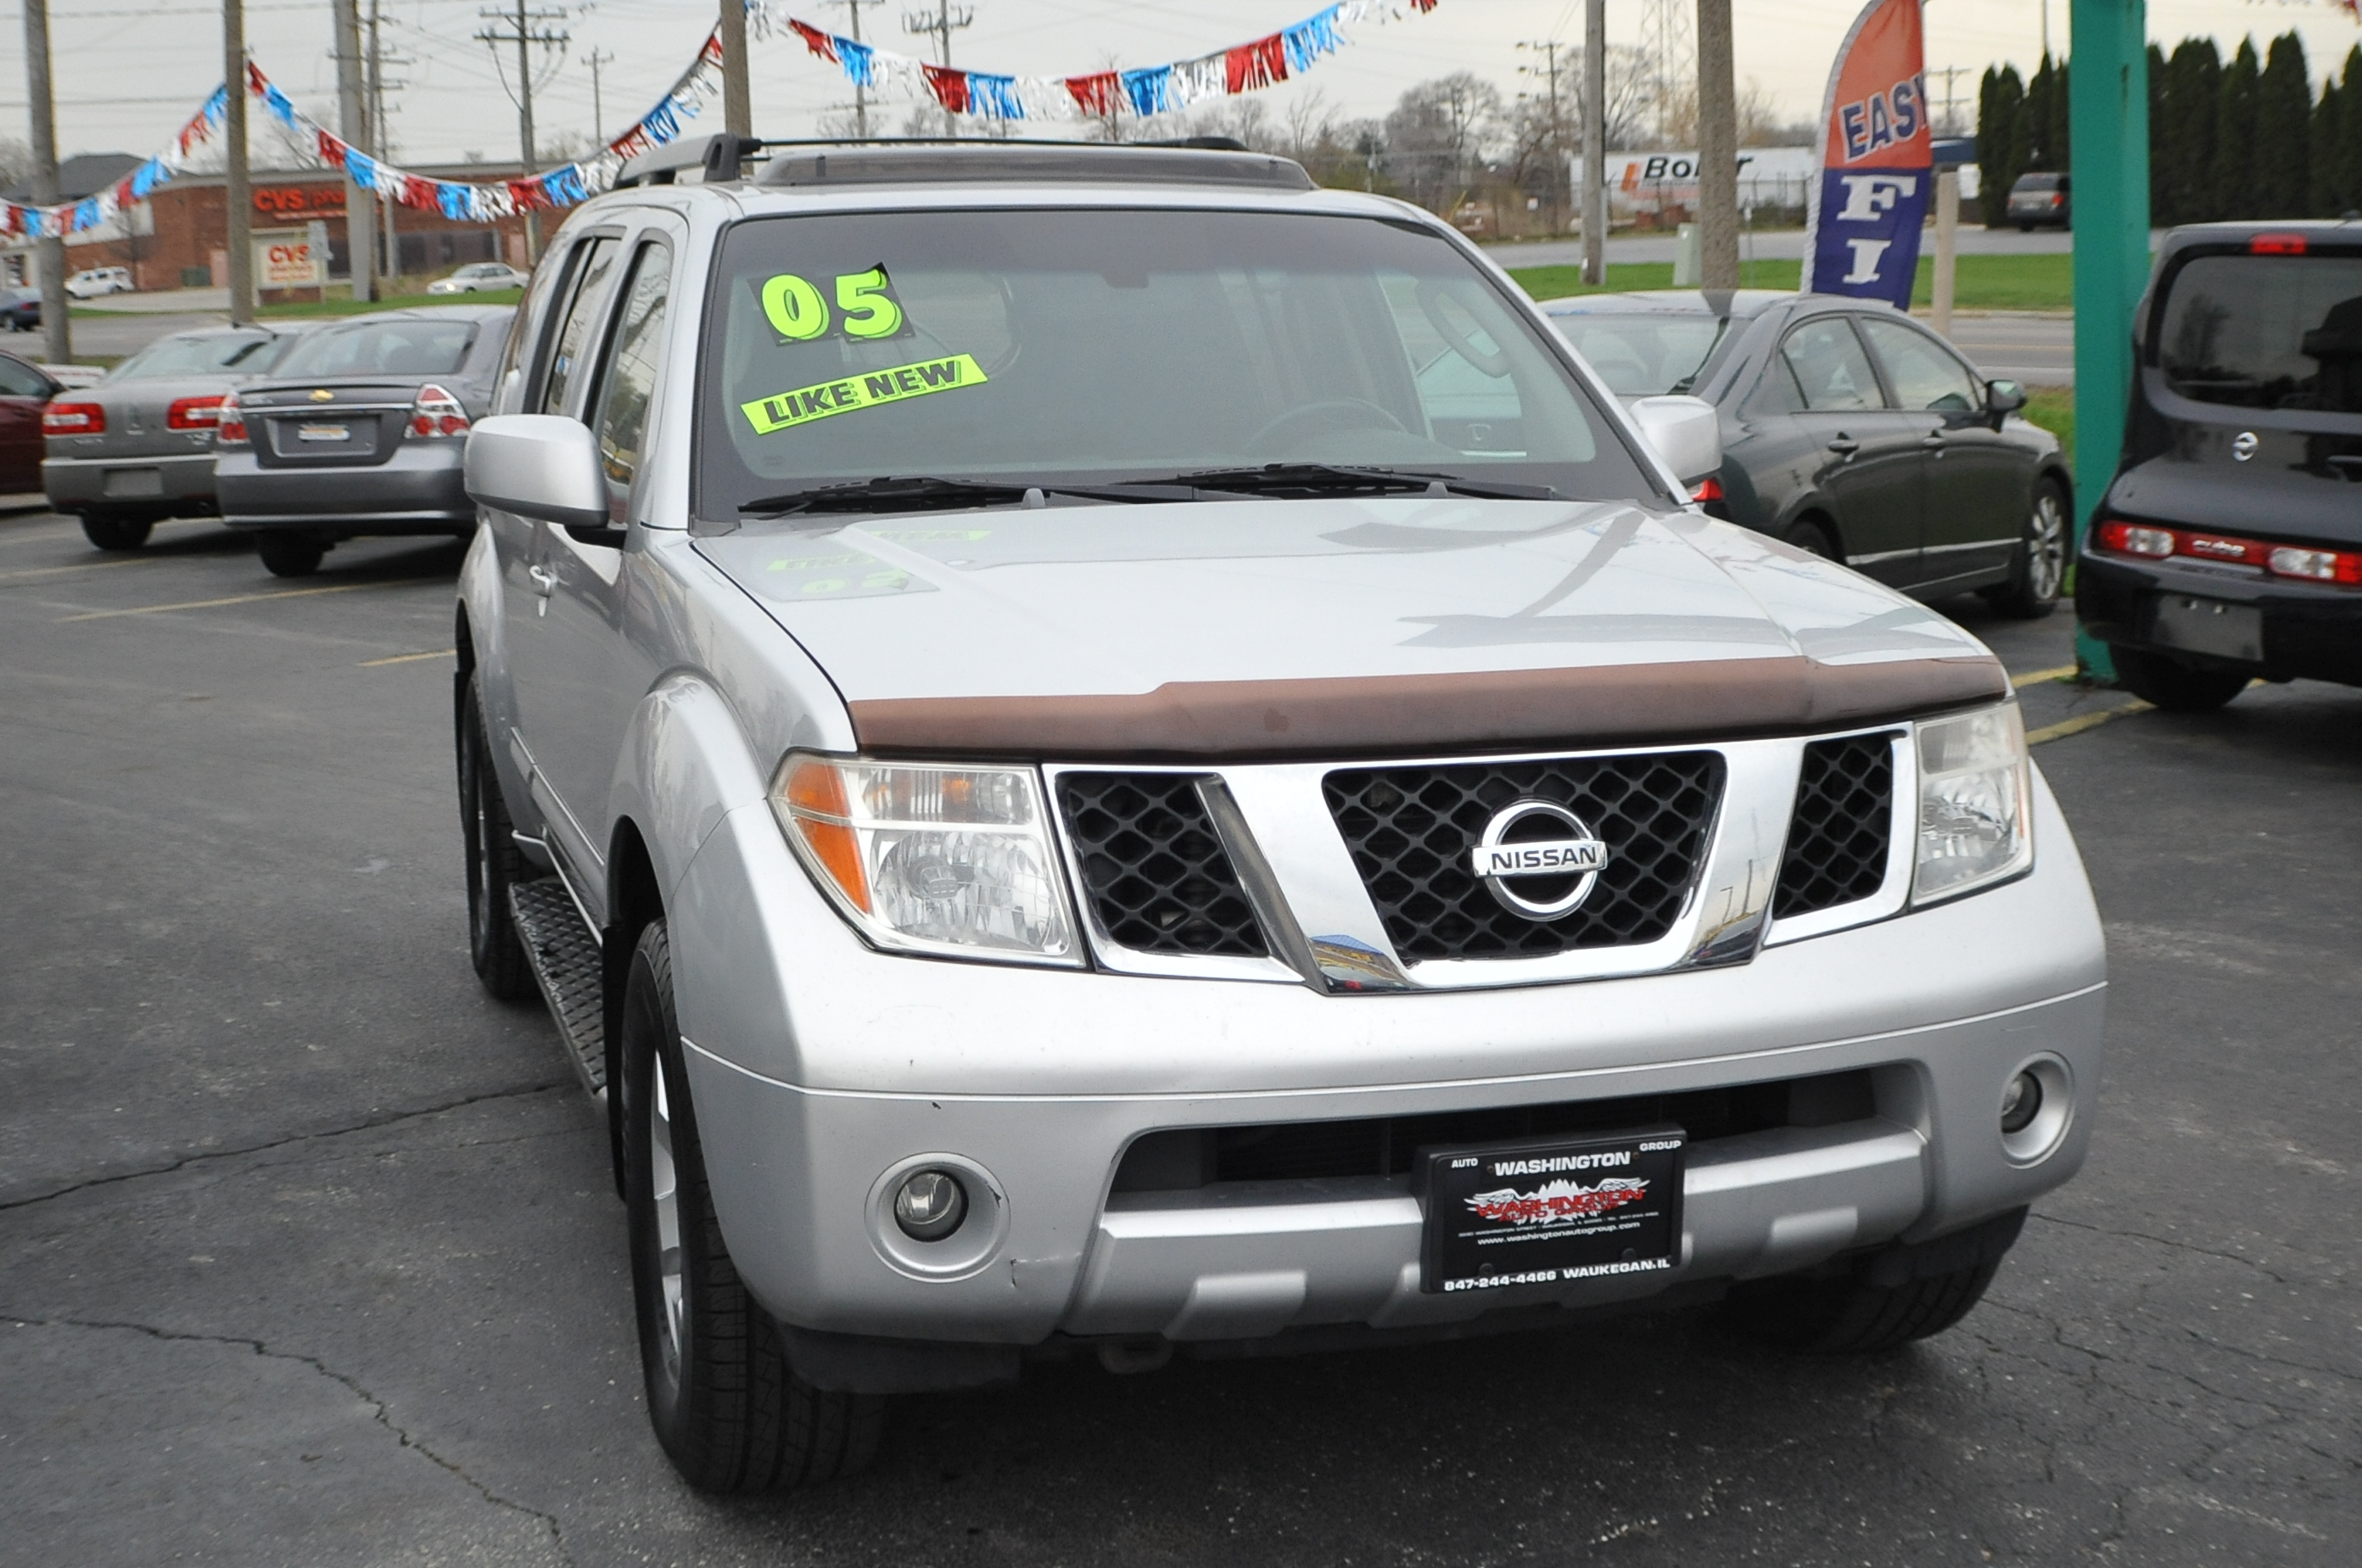 Used Suv For Sale By Owner >> 2005 Nissan Pathfinder SE Silver SUV 4x4 Sale Washington Auto